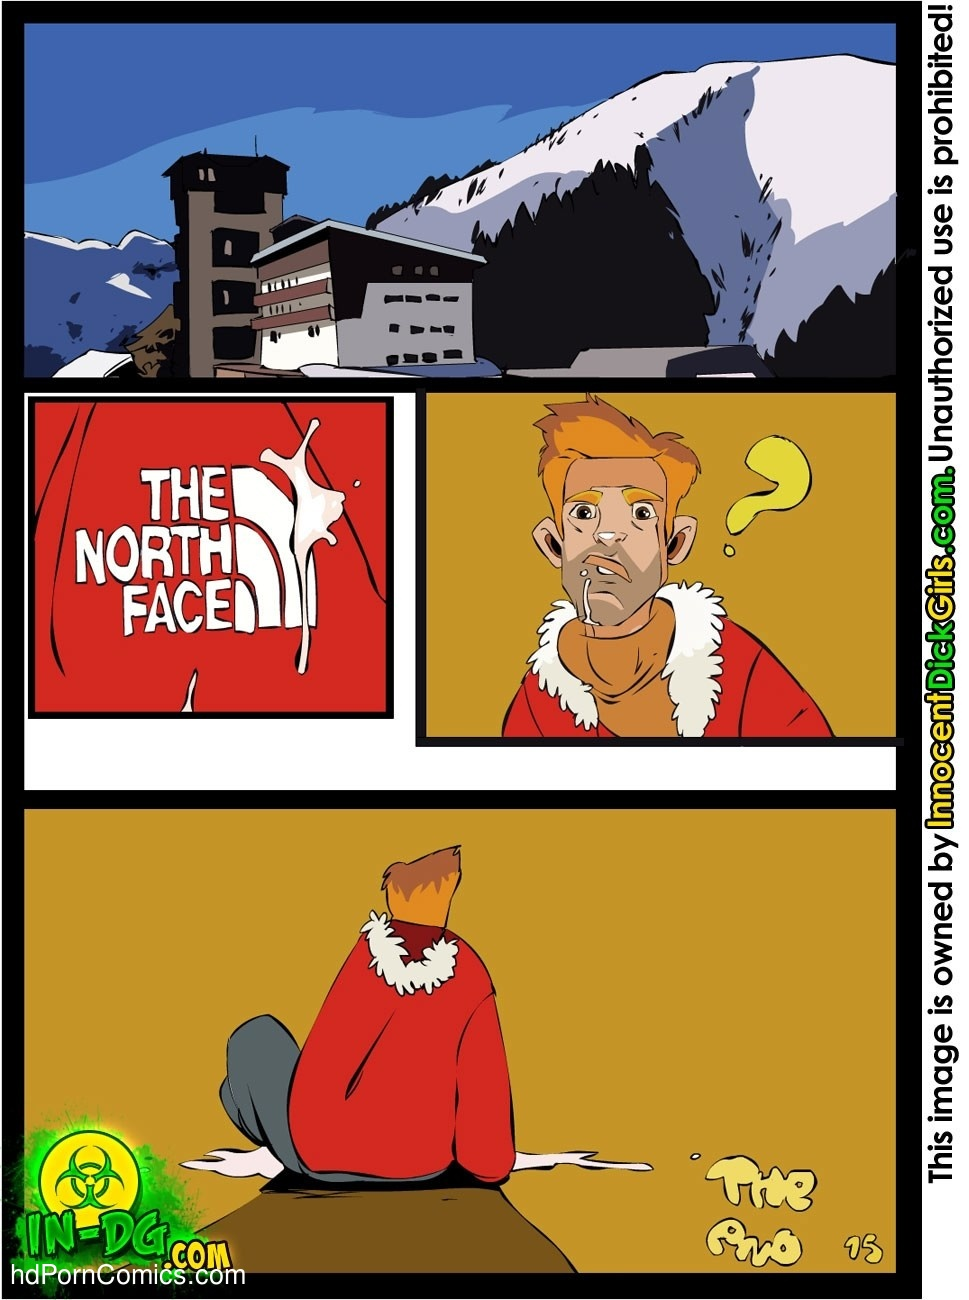 The Free Ski Pass Sex Comic